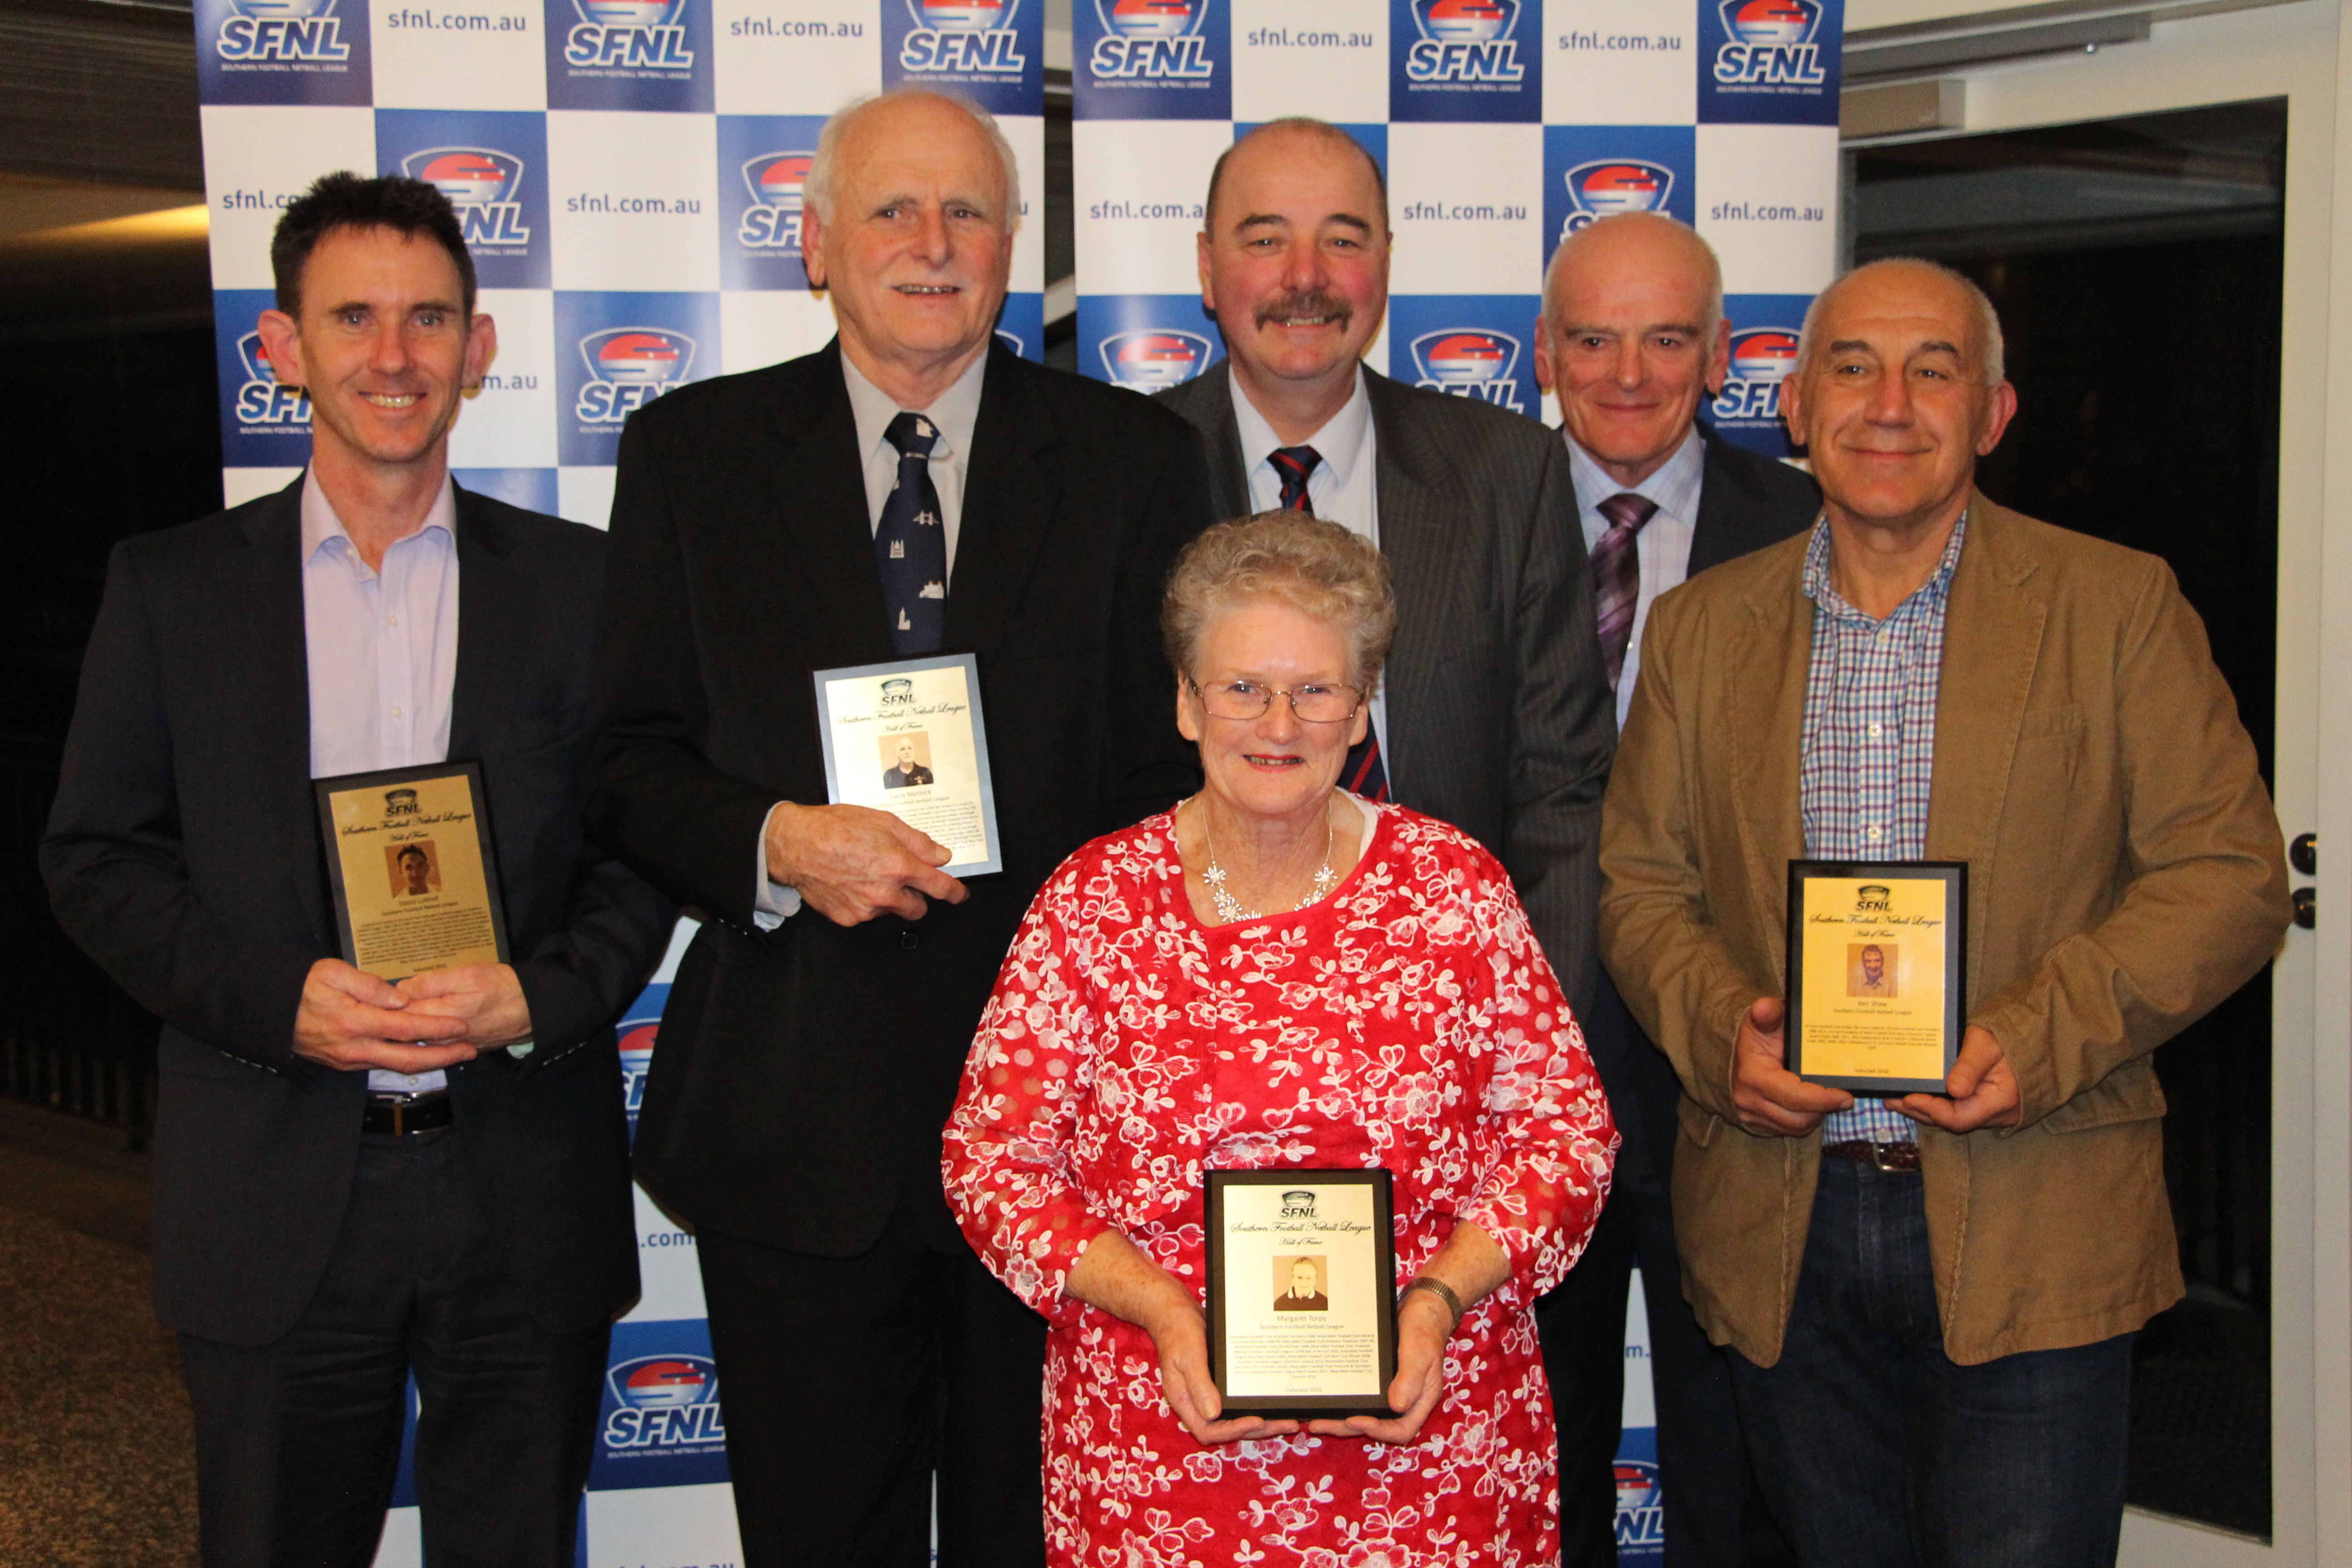 The 2016 SFNL Hall of Fame inductees pose with their plaques